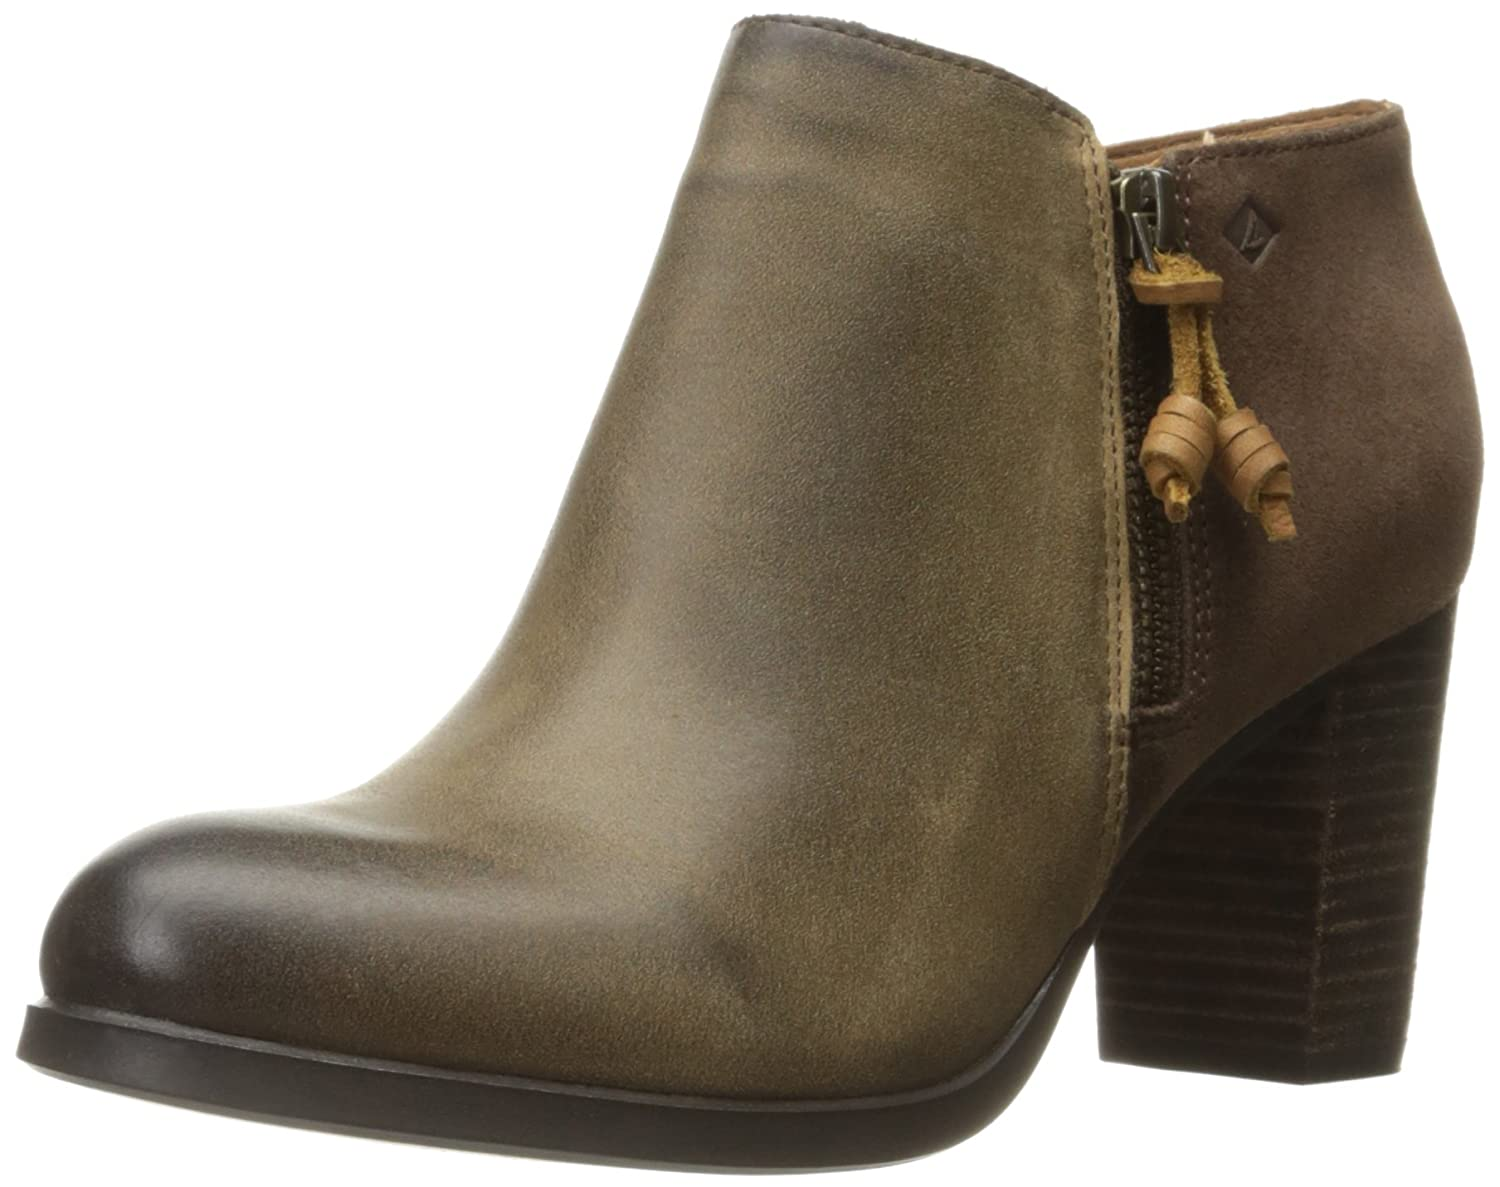 Sperry Top-Sider Women's Dasher Lille Ankle Bootie B019X5D6XK 11 B(M) US|Khaki